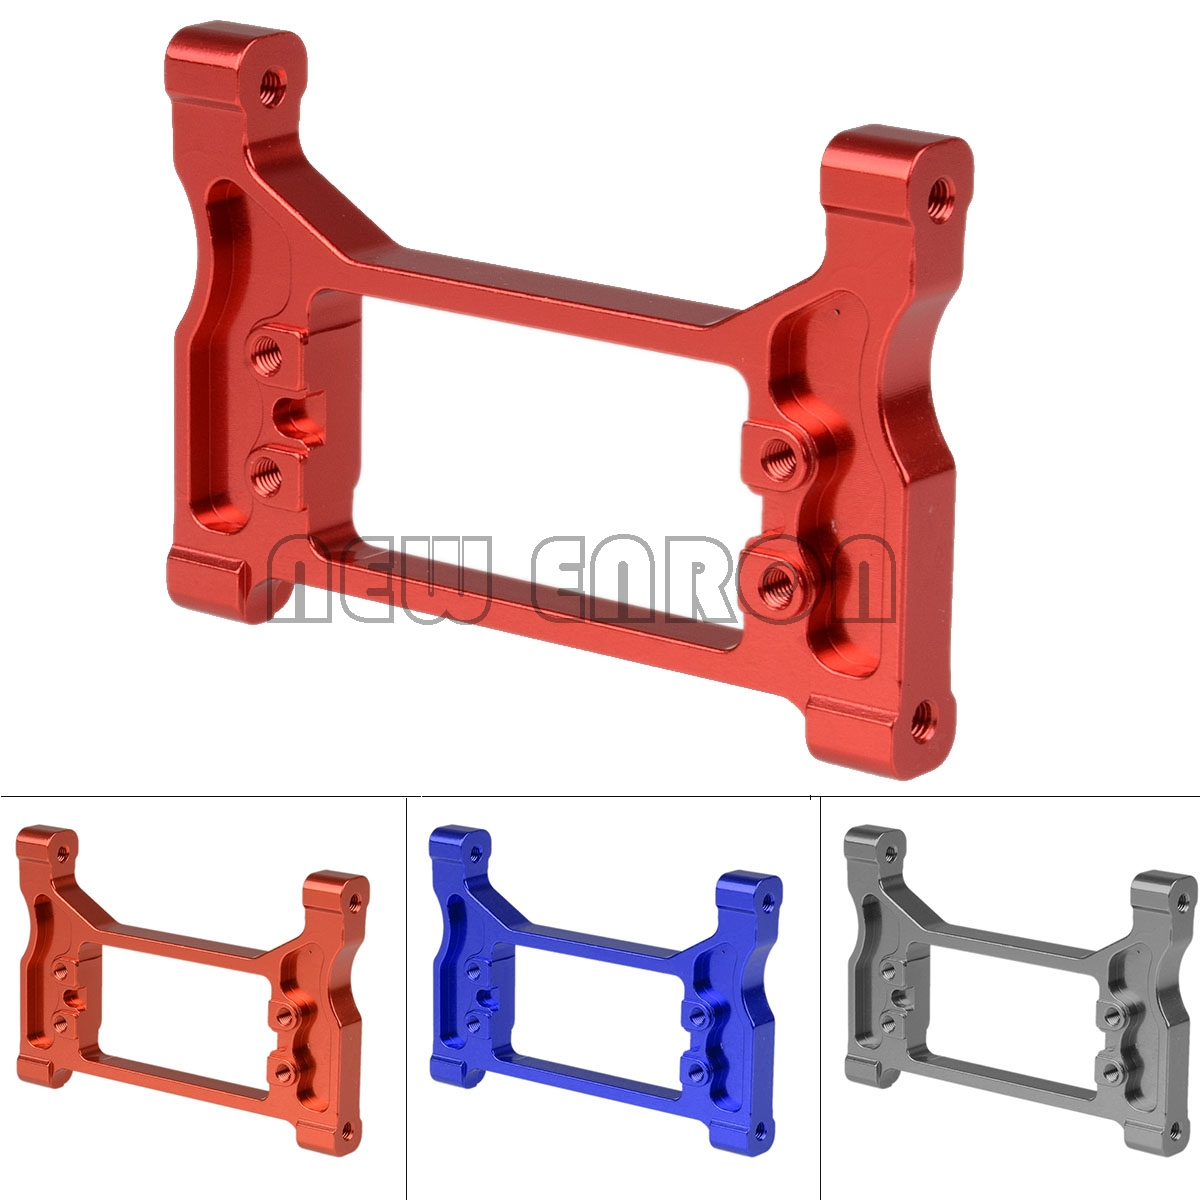 NEW ENRON Aluminum Front Steering Servo Mount For RC Racing 1/10 Traxxas TRX-4 TRX4 #8239